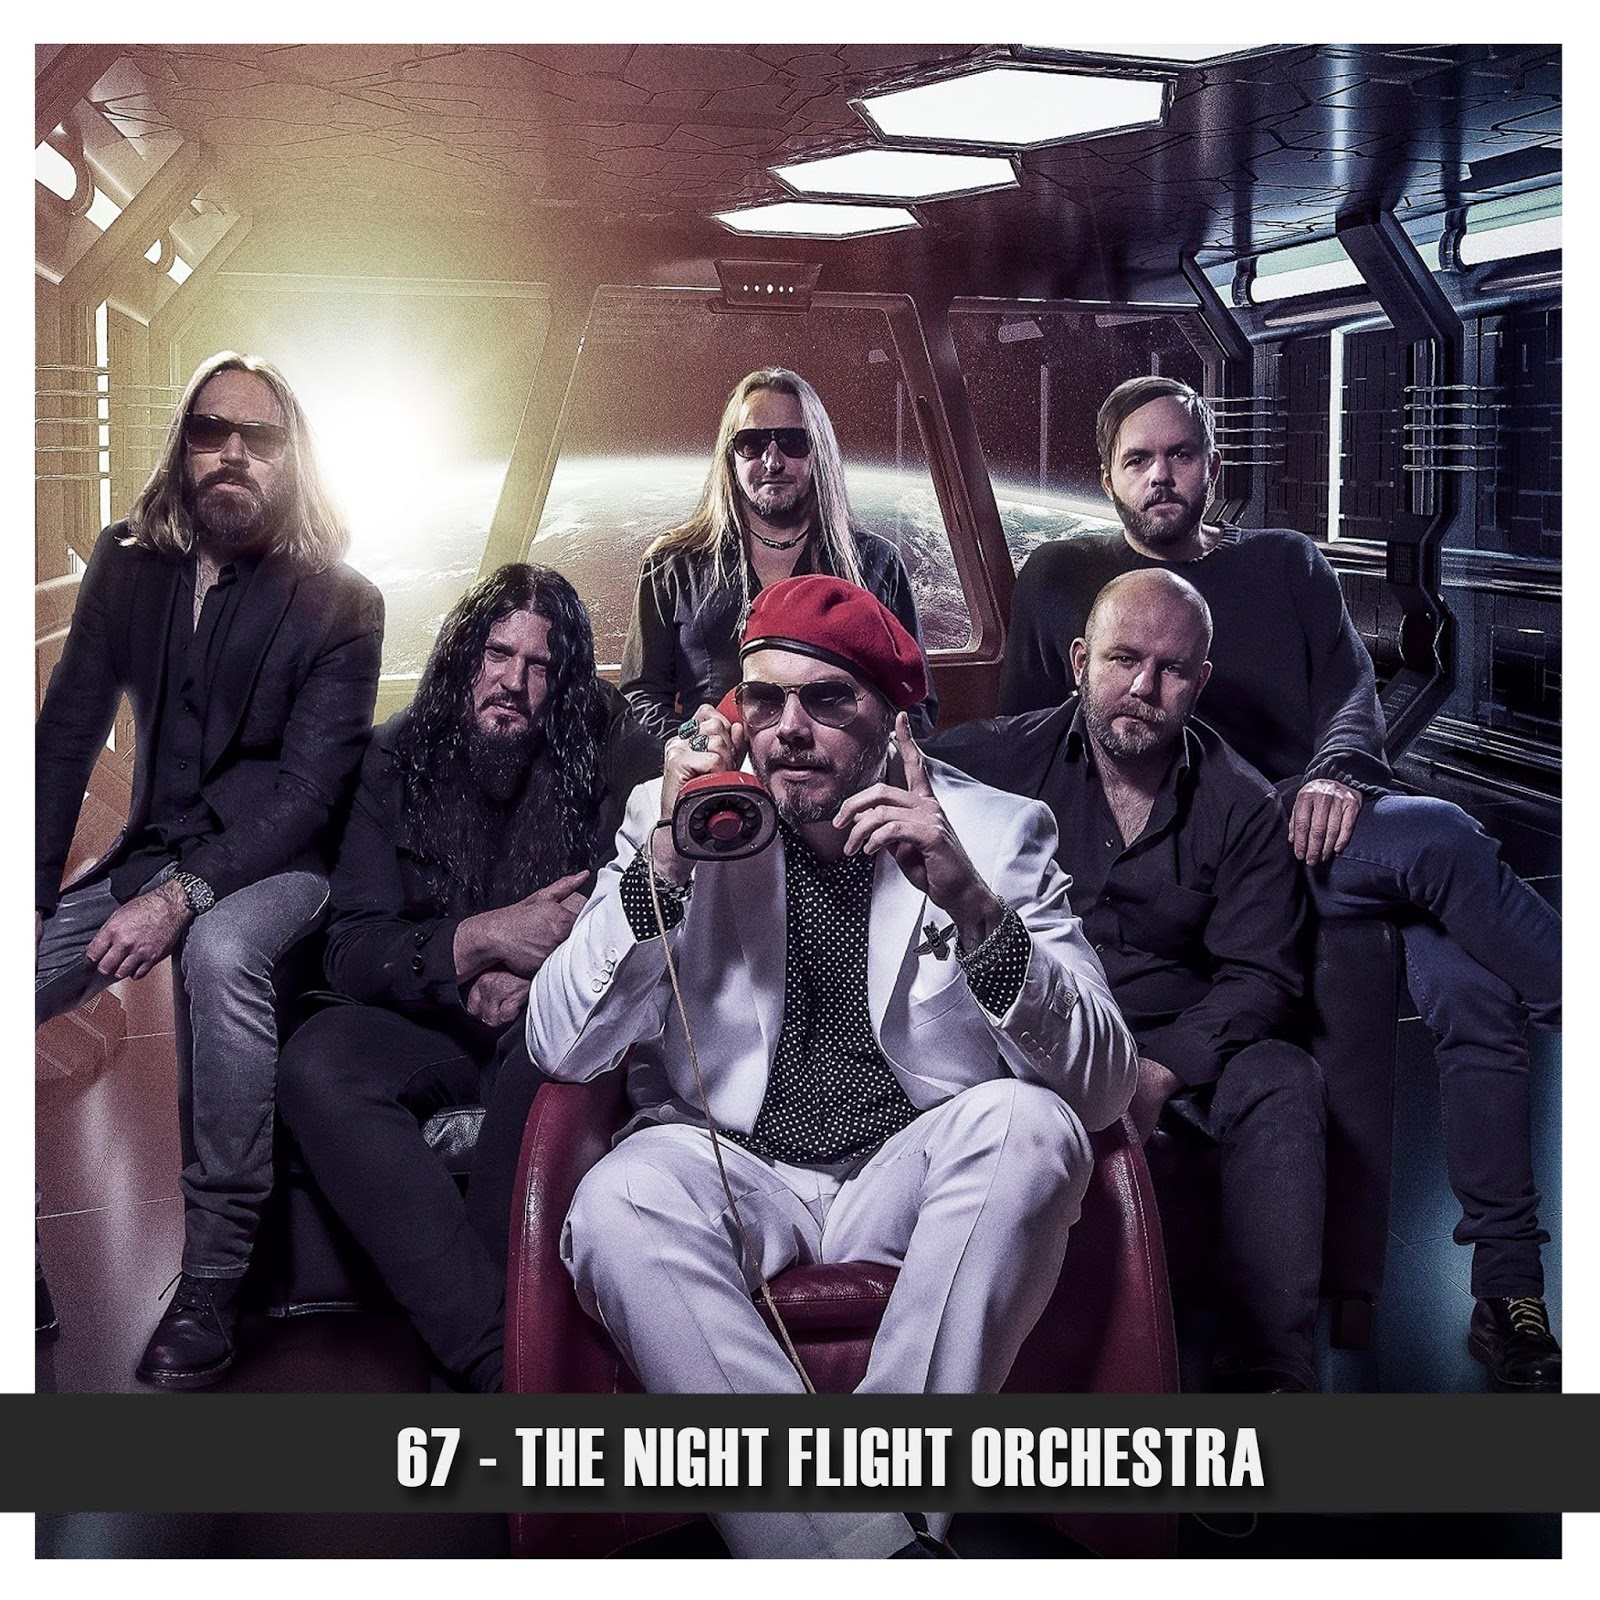 Doublecast 67 - The Night Flight Orchestra